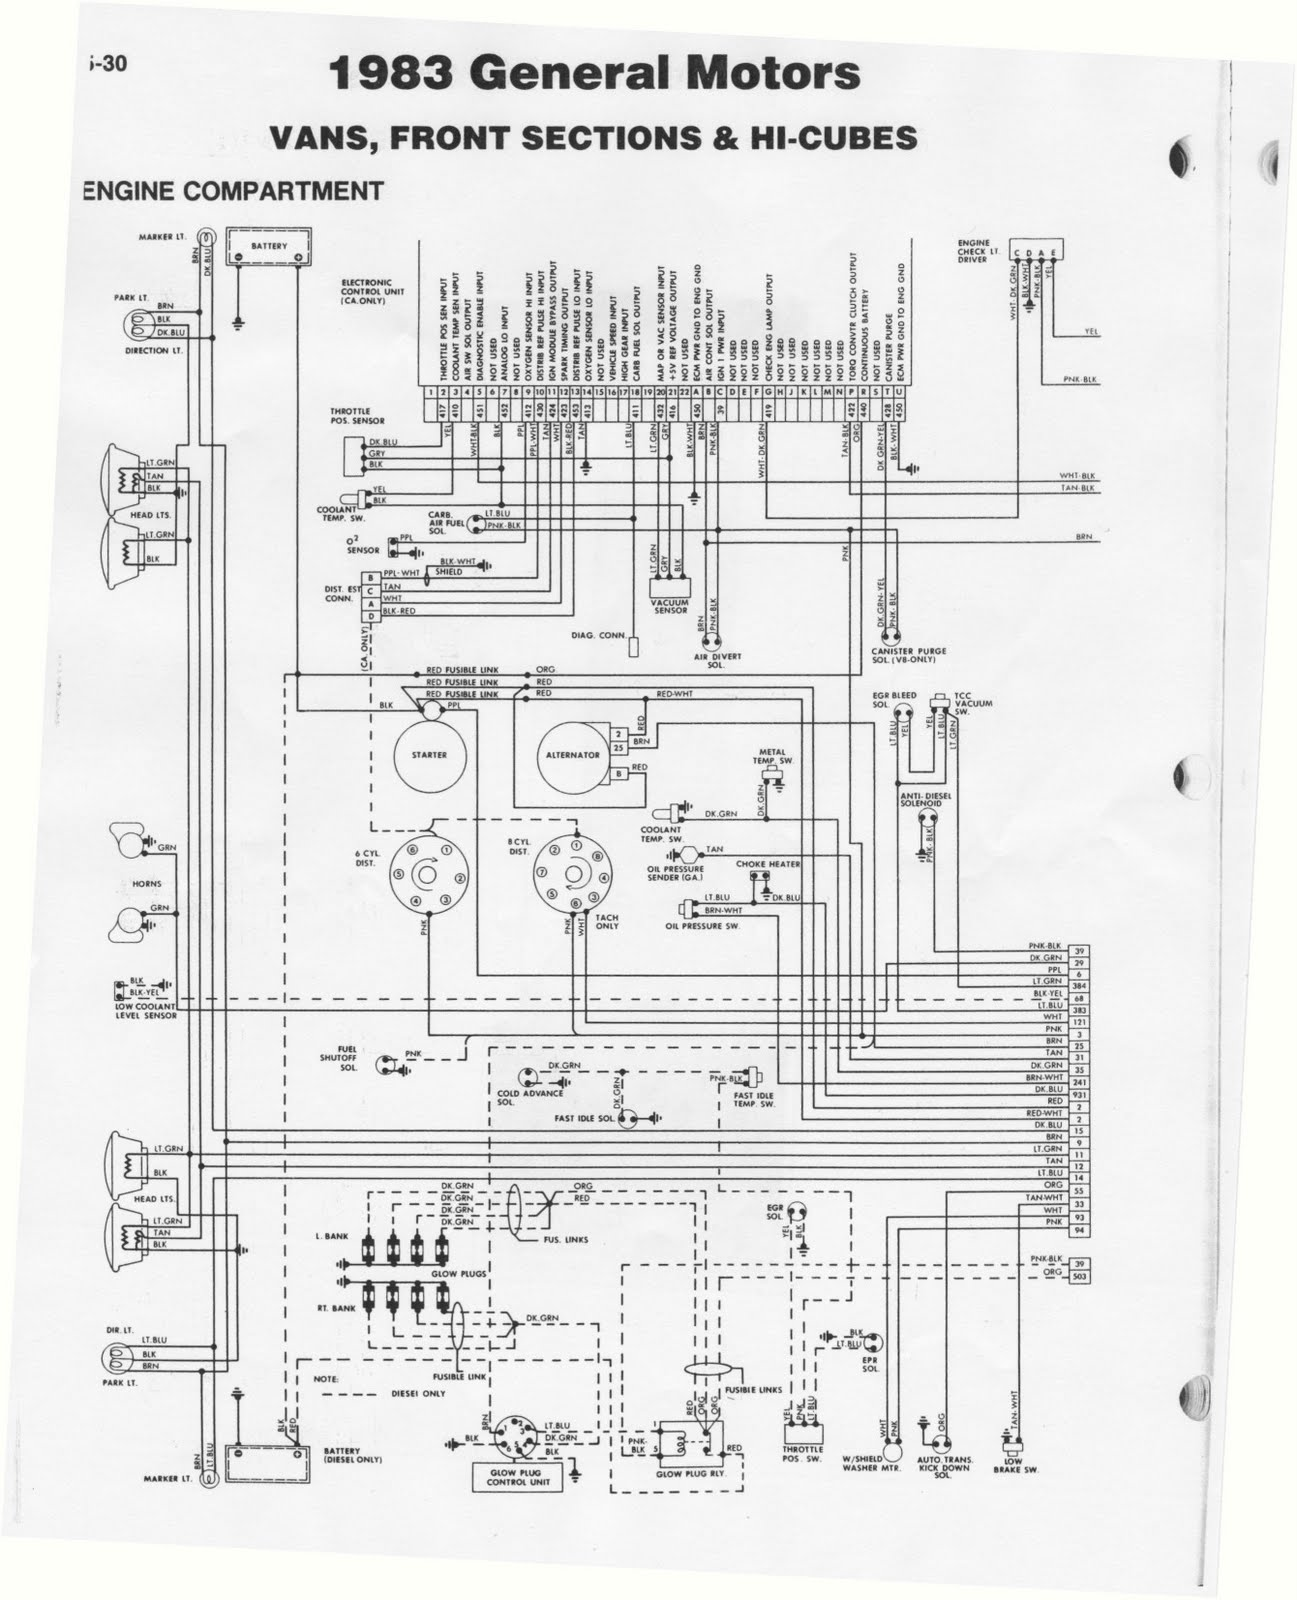 Unique Ford F 350 Wiring Diagram Together With 1987 Ford E 350 Wiring  Diagram